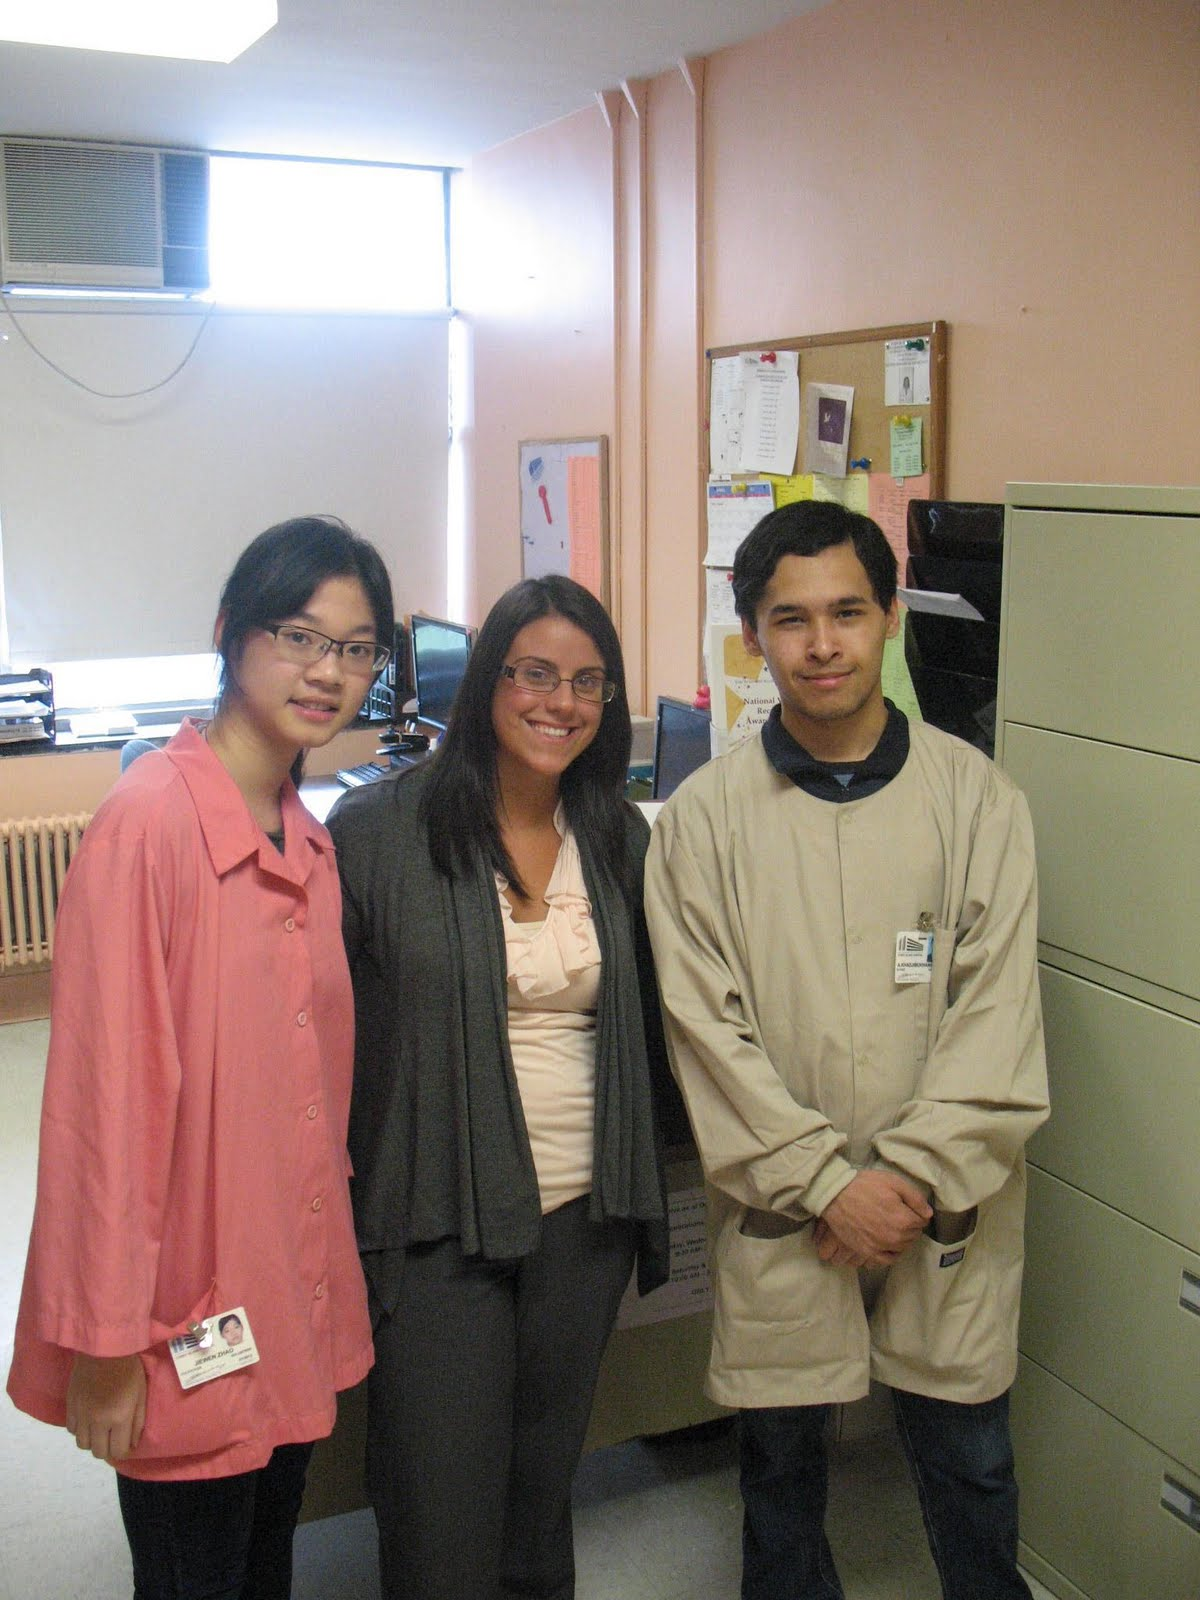 coney island hospital akmal khadjimukhamedov photo essay post 7 at this first two pictures shown volunteer department of coney island hospital at there you can see my mentor ms christina and my friend jiewen